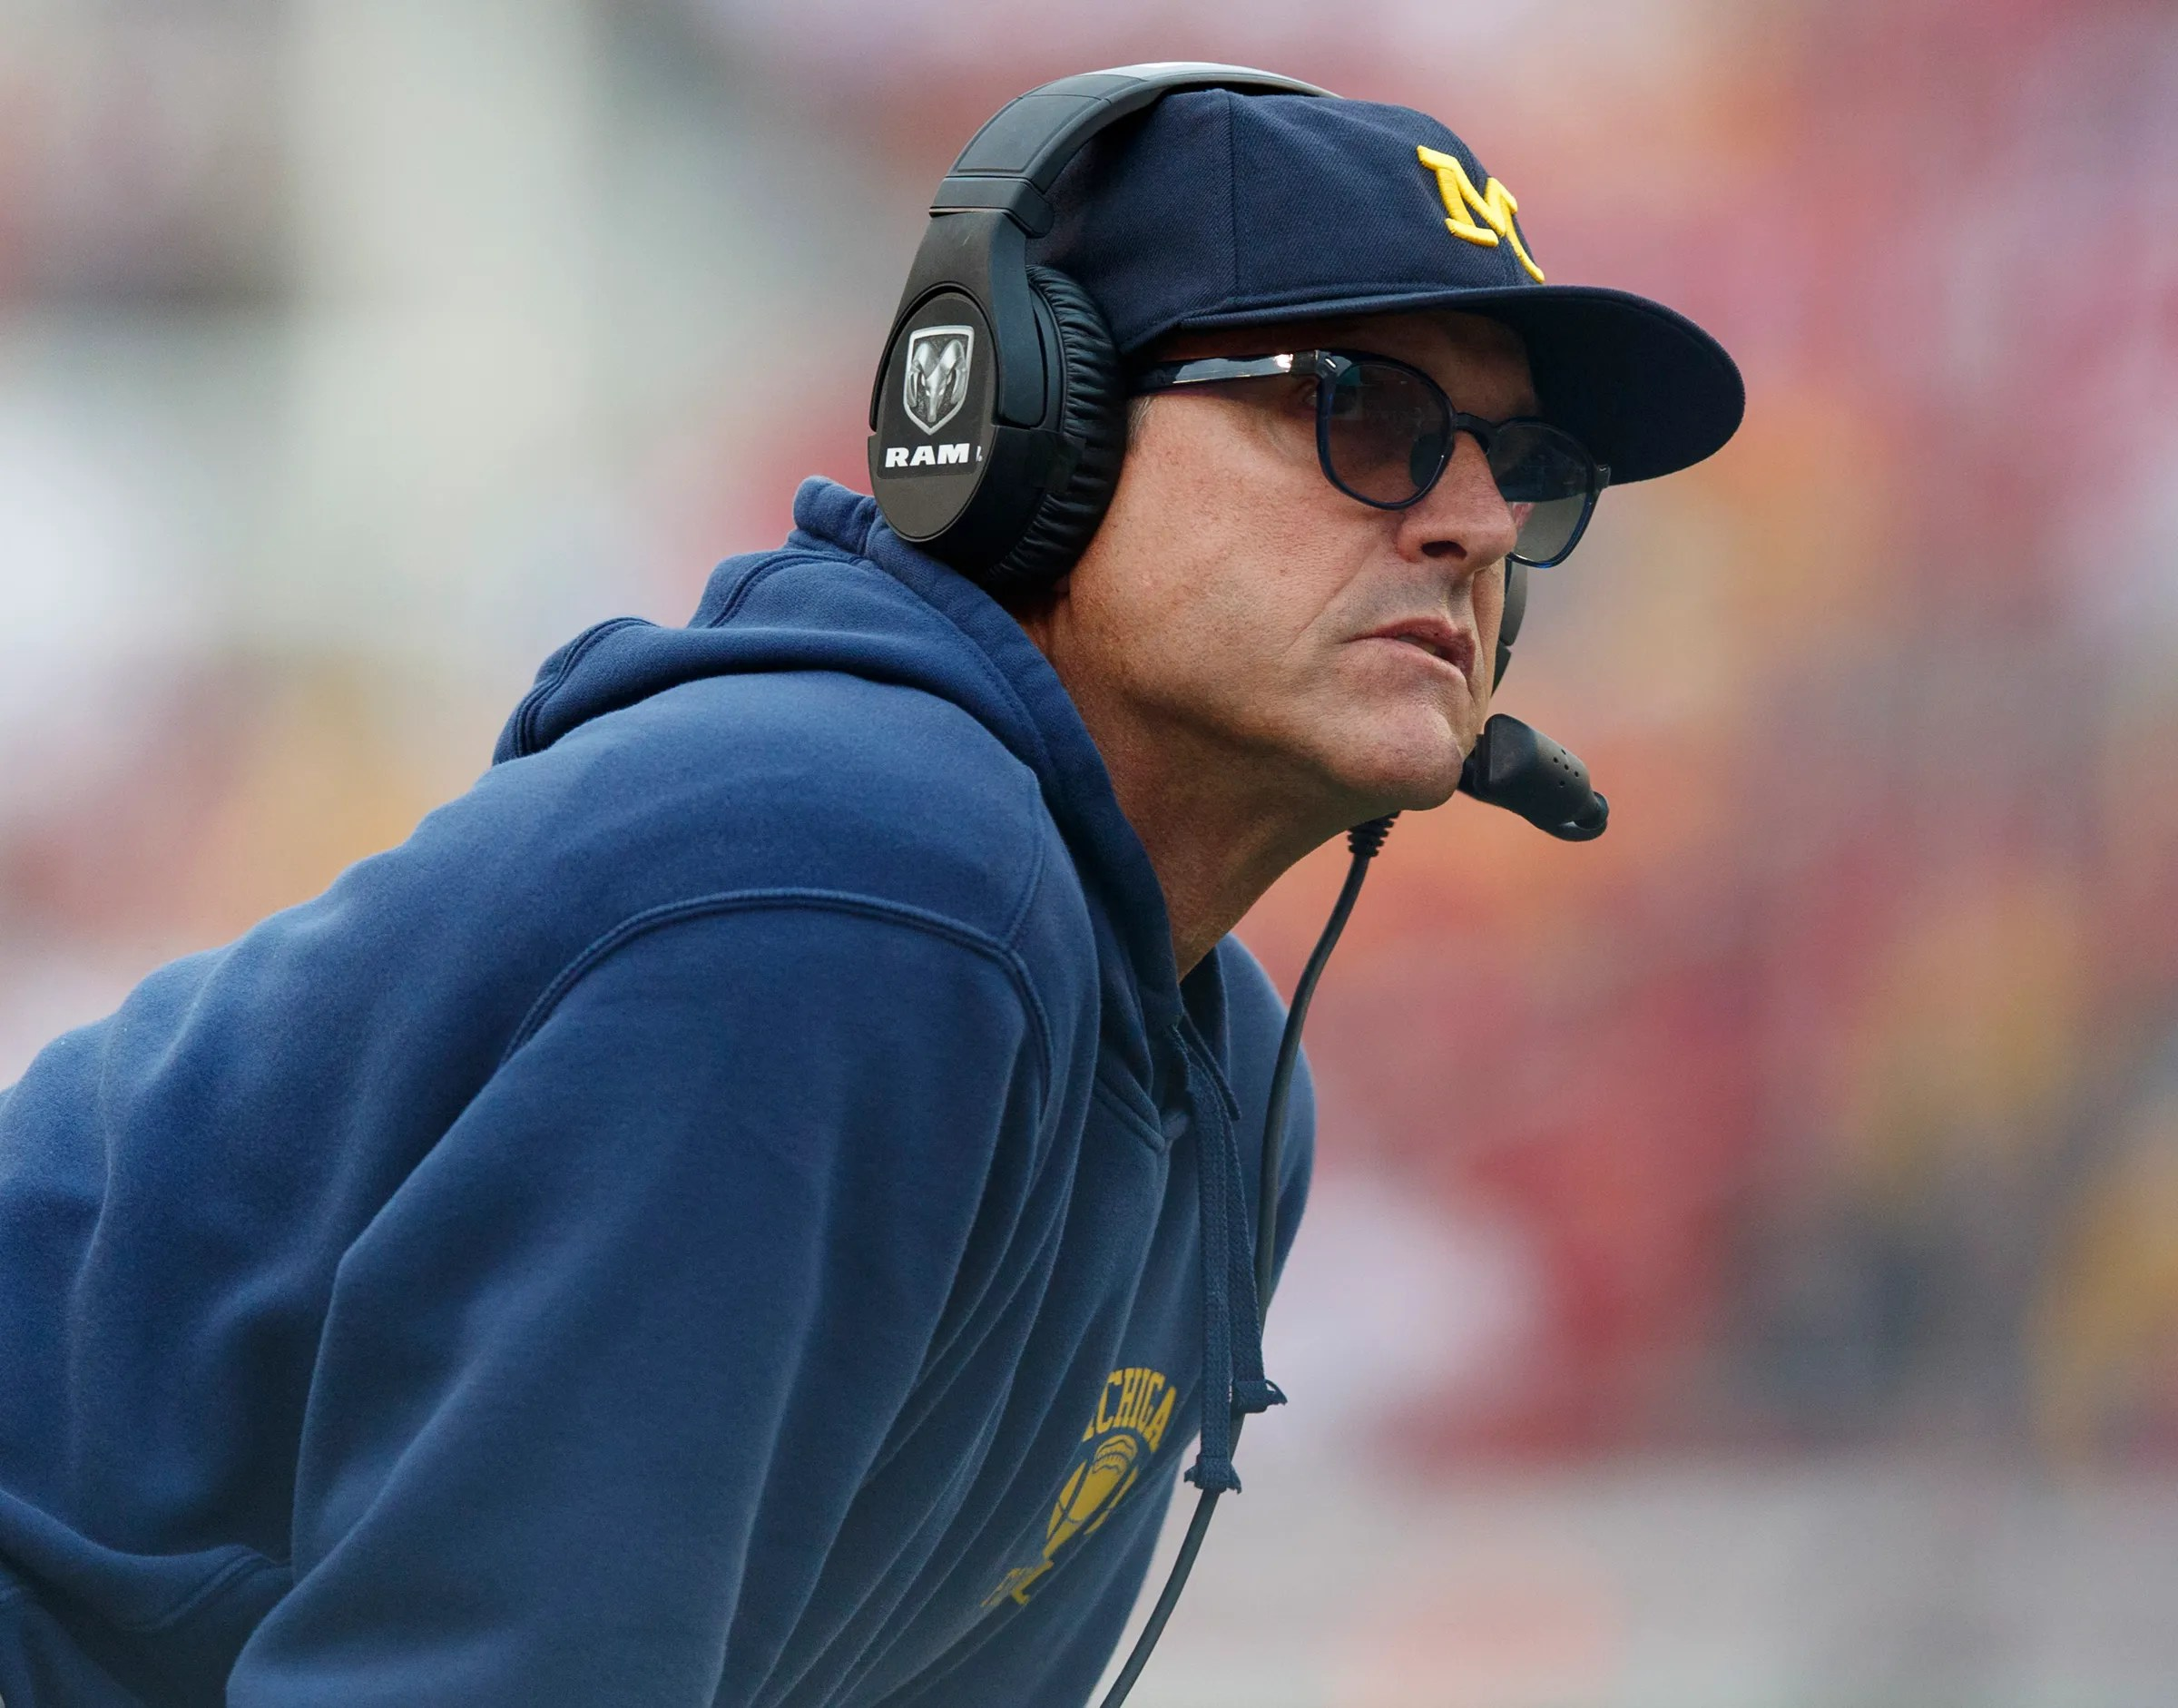 Jim Harbaugh got crushed by social media after Michigan ...